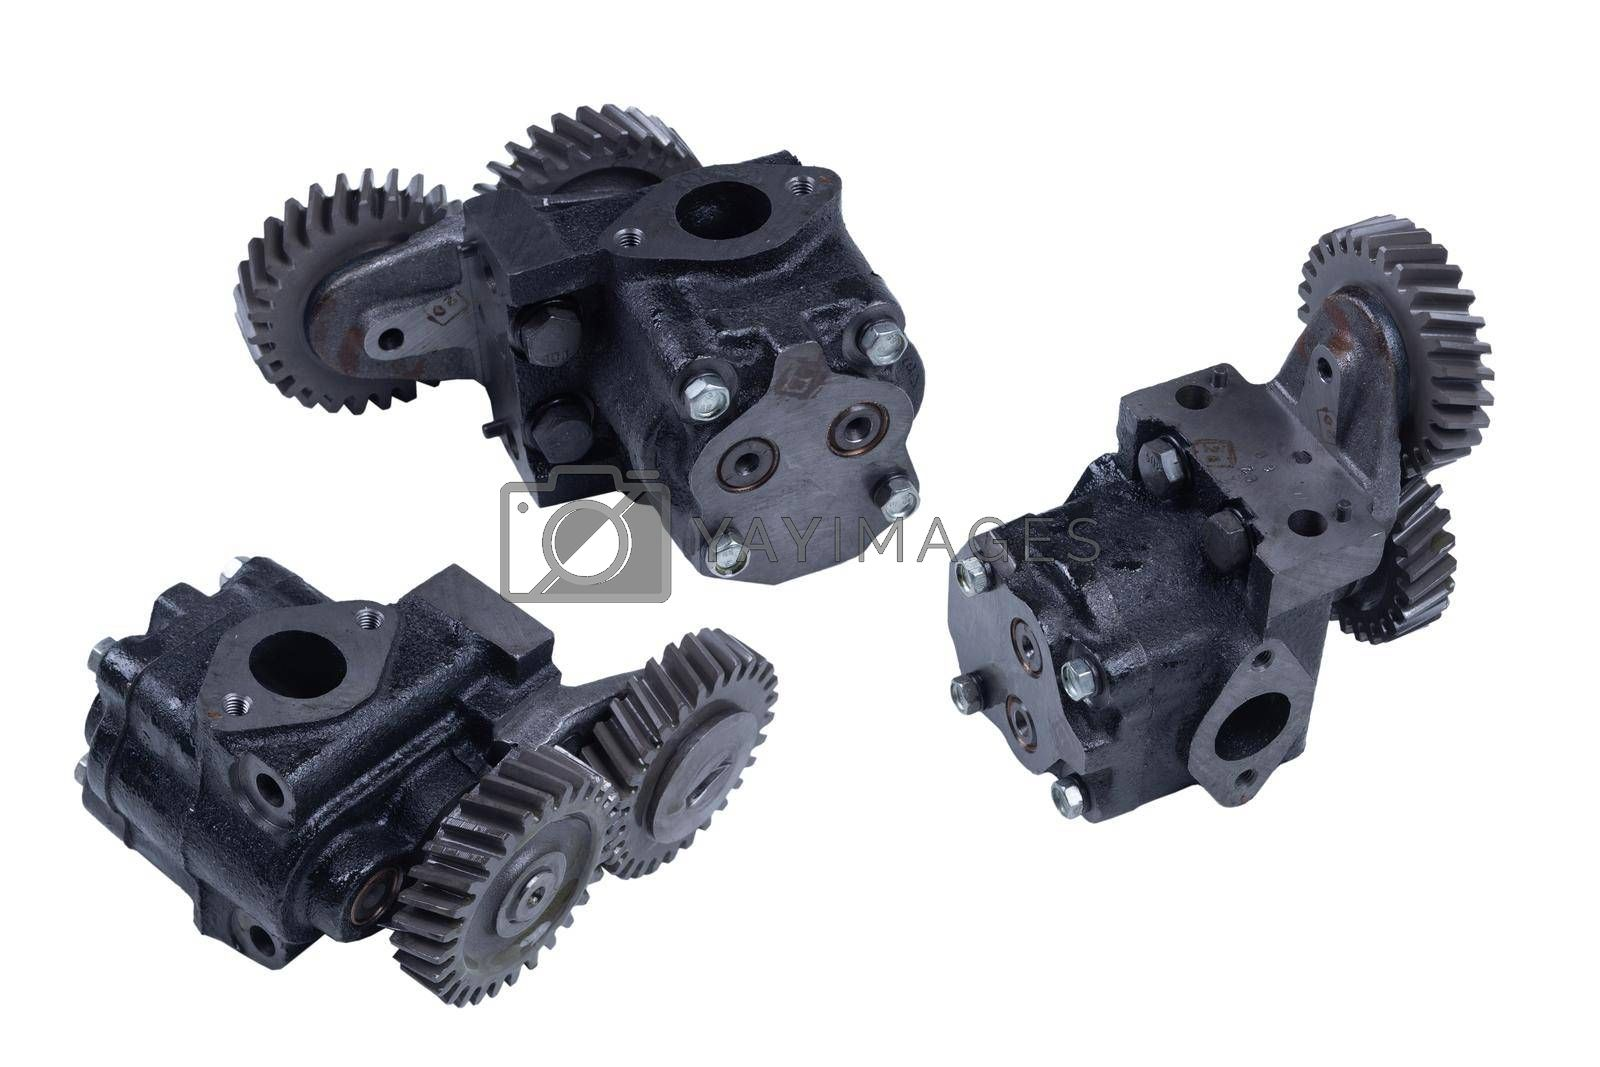 Royalty free image of truck oil gear pump isolated on white background by forester